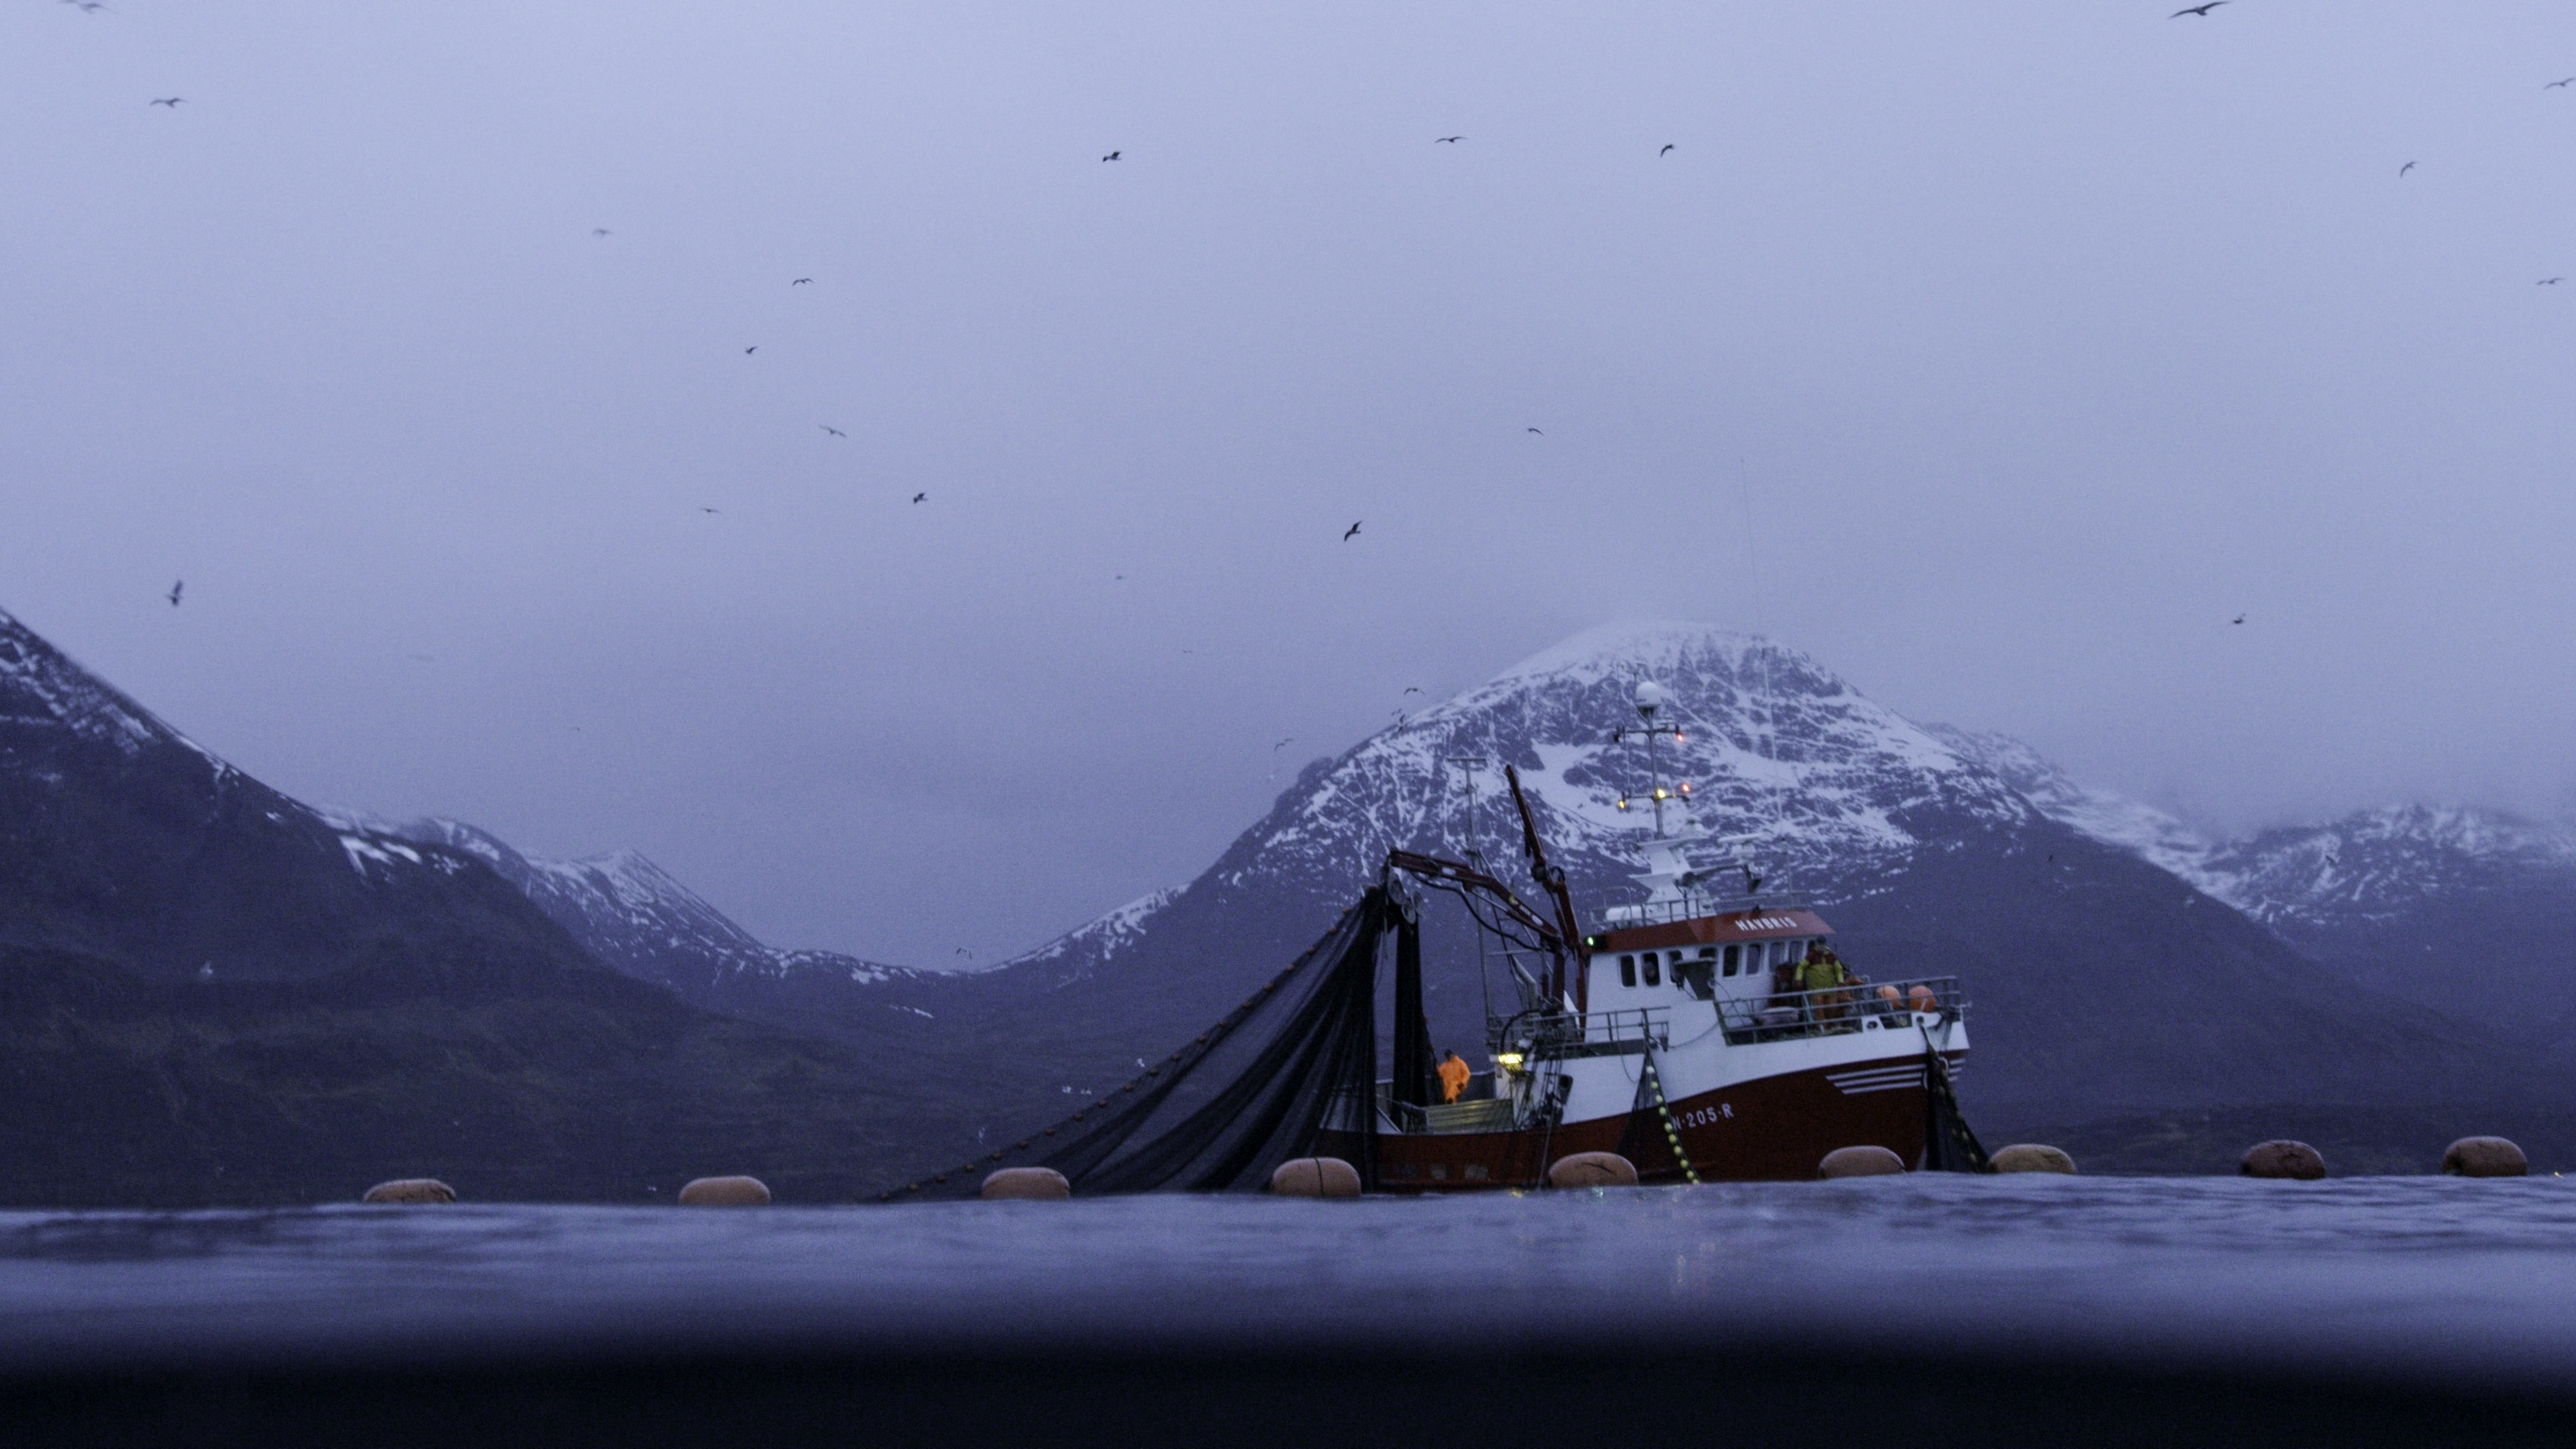 Orcas have learned to take advantage of Norway's fishing industry for easy prey. (National Geographic for Disney+/Luis Lamar)